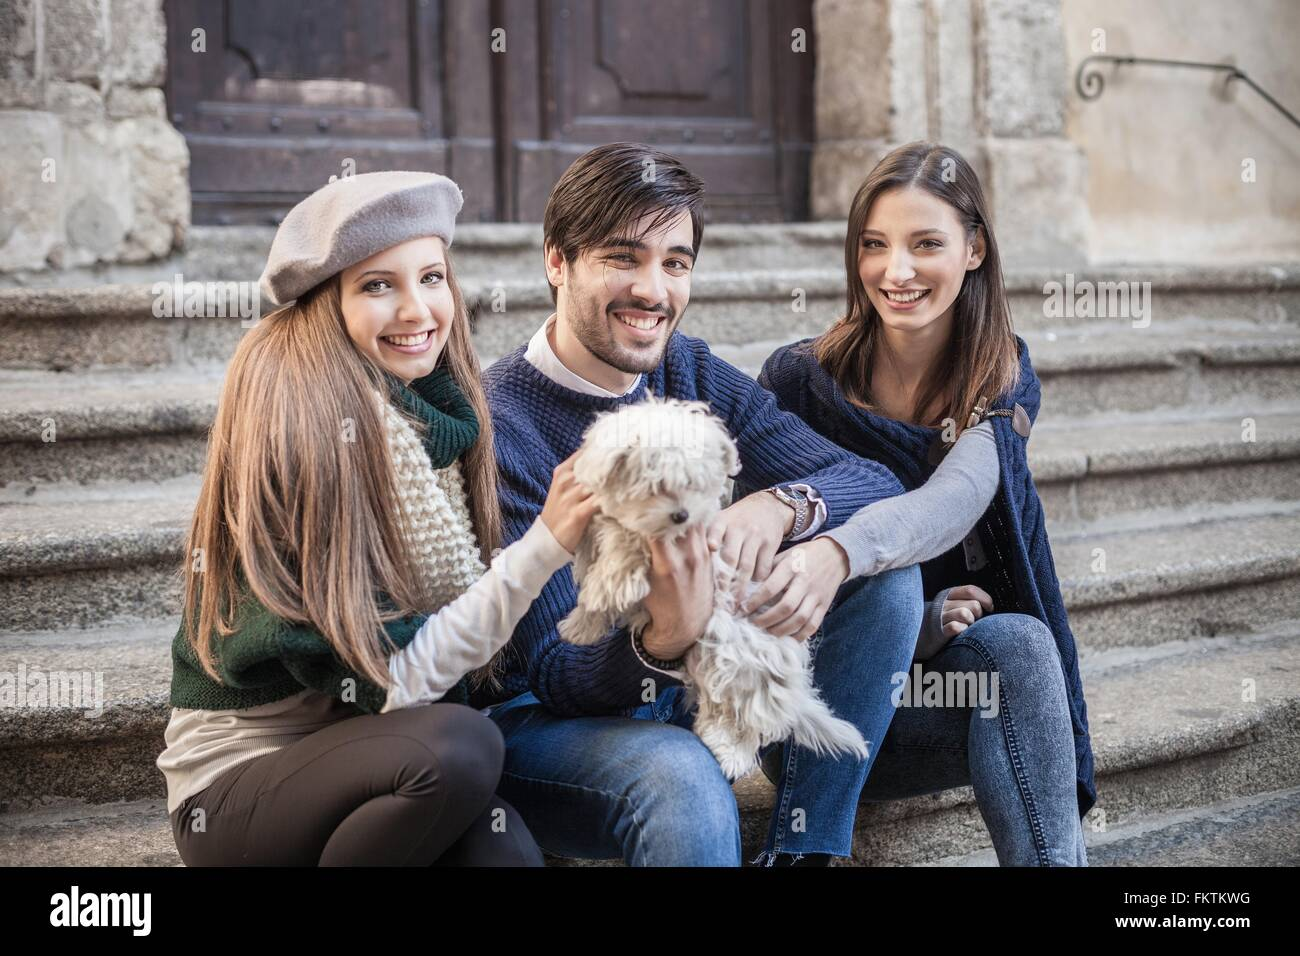 Friends sitting side by side on steps holding fluffy dog looking at camera smiling - Stock Image